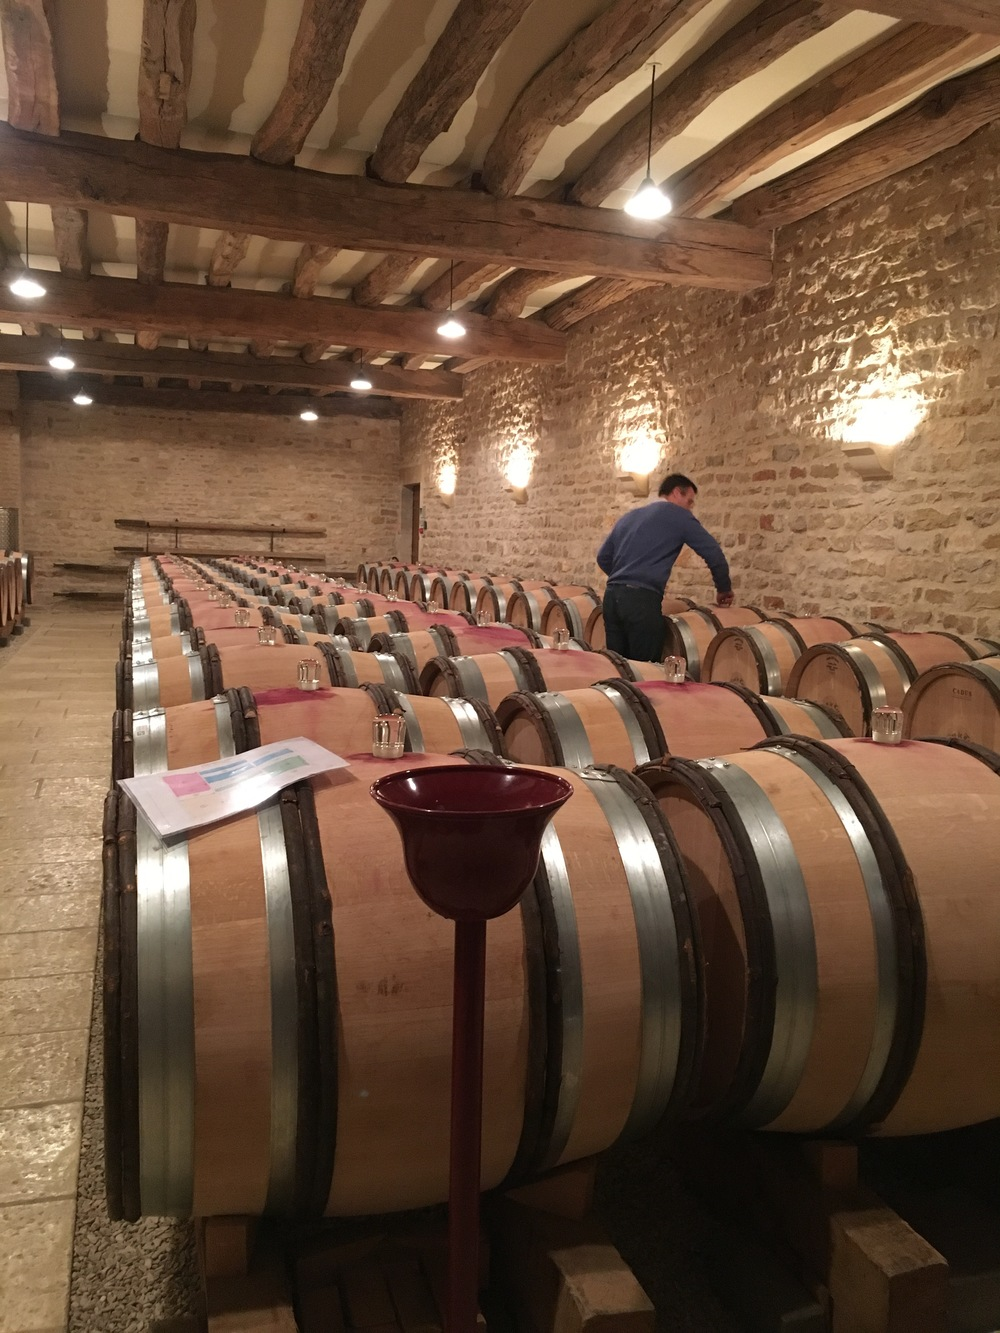 Jacques assessing the barrels for tasting.